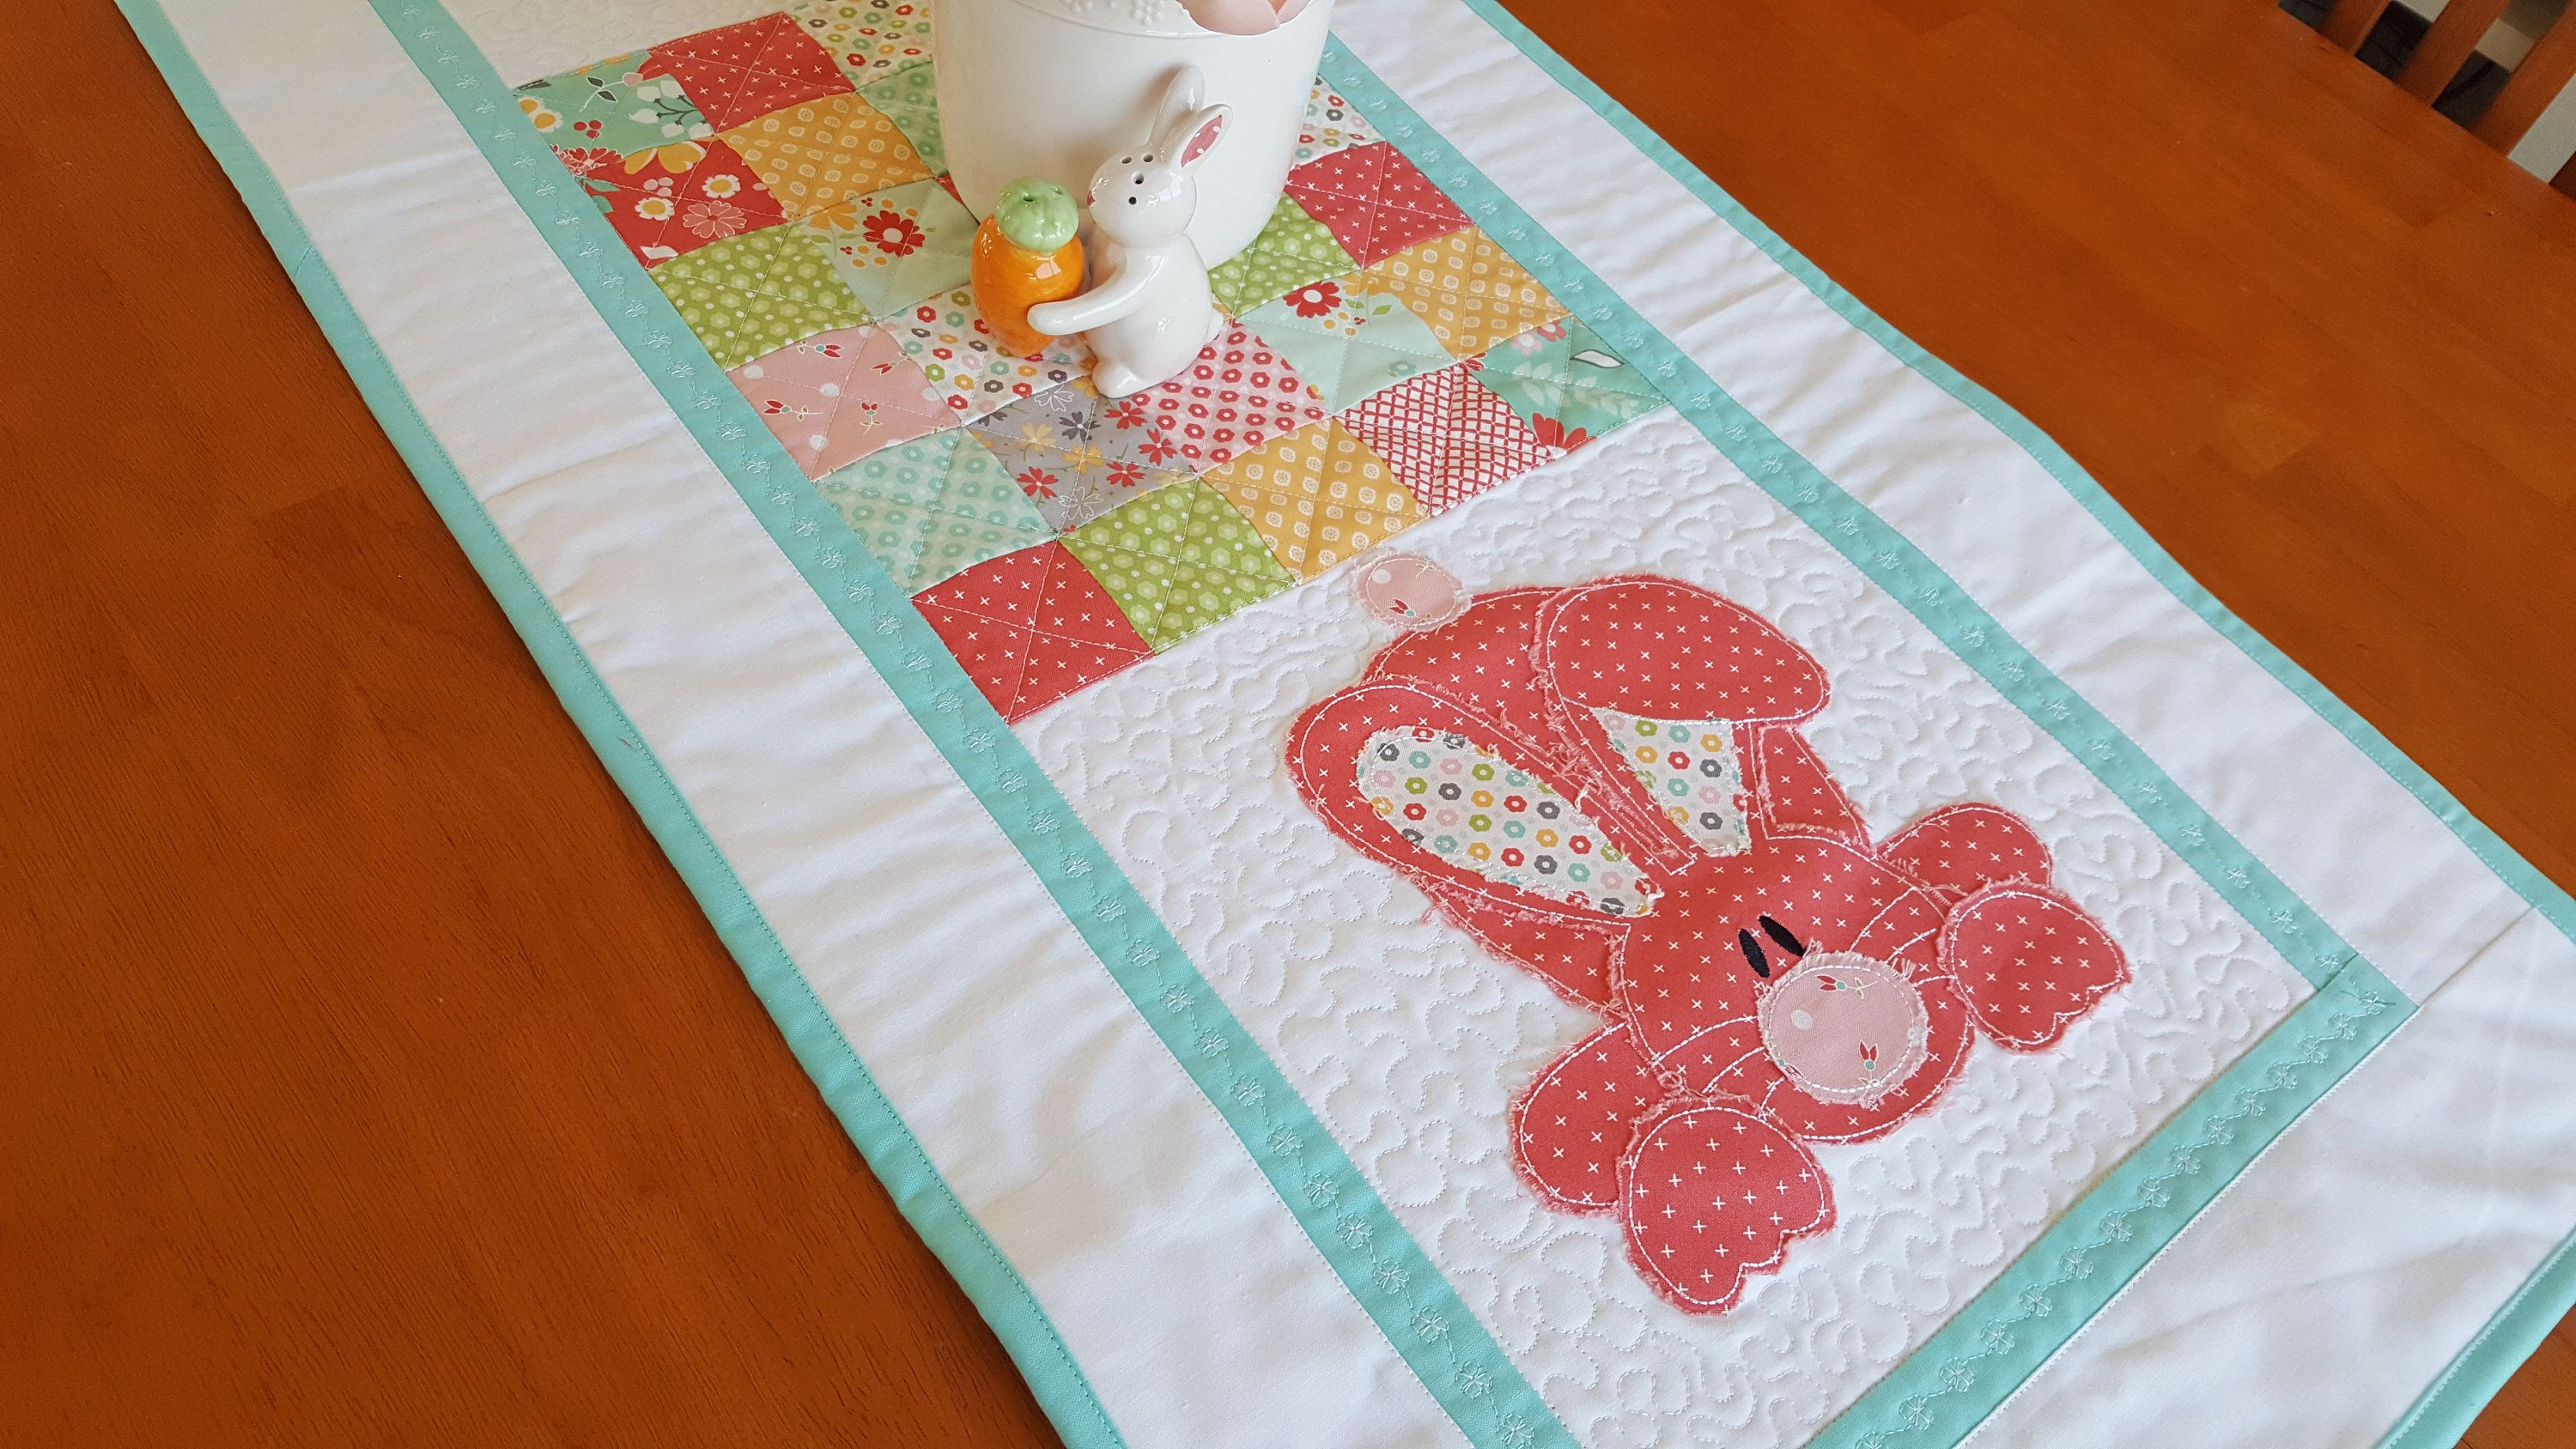 Coral Pink Raw Edge Applique Easter Bunny Rabbit Quilted Table Etsy In 2020 Quilted Table Runner Spring Table Runner Quilted Table Runners